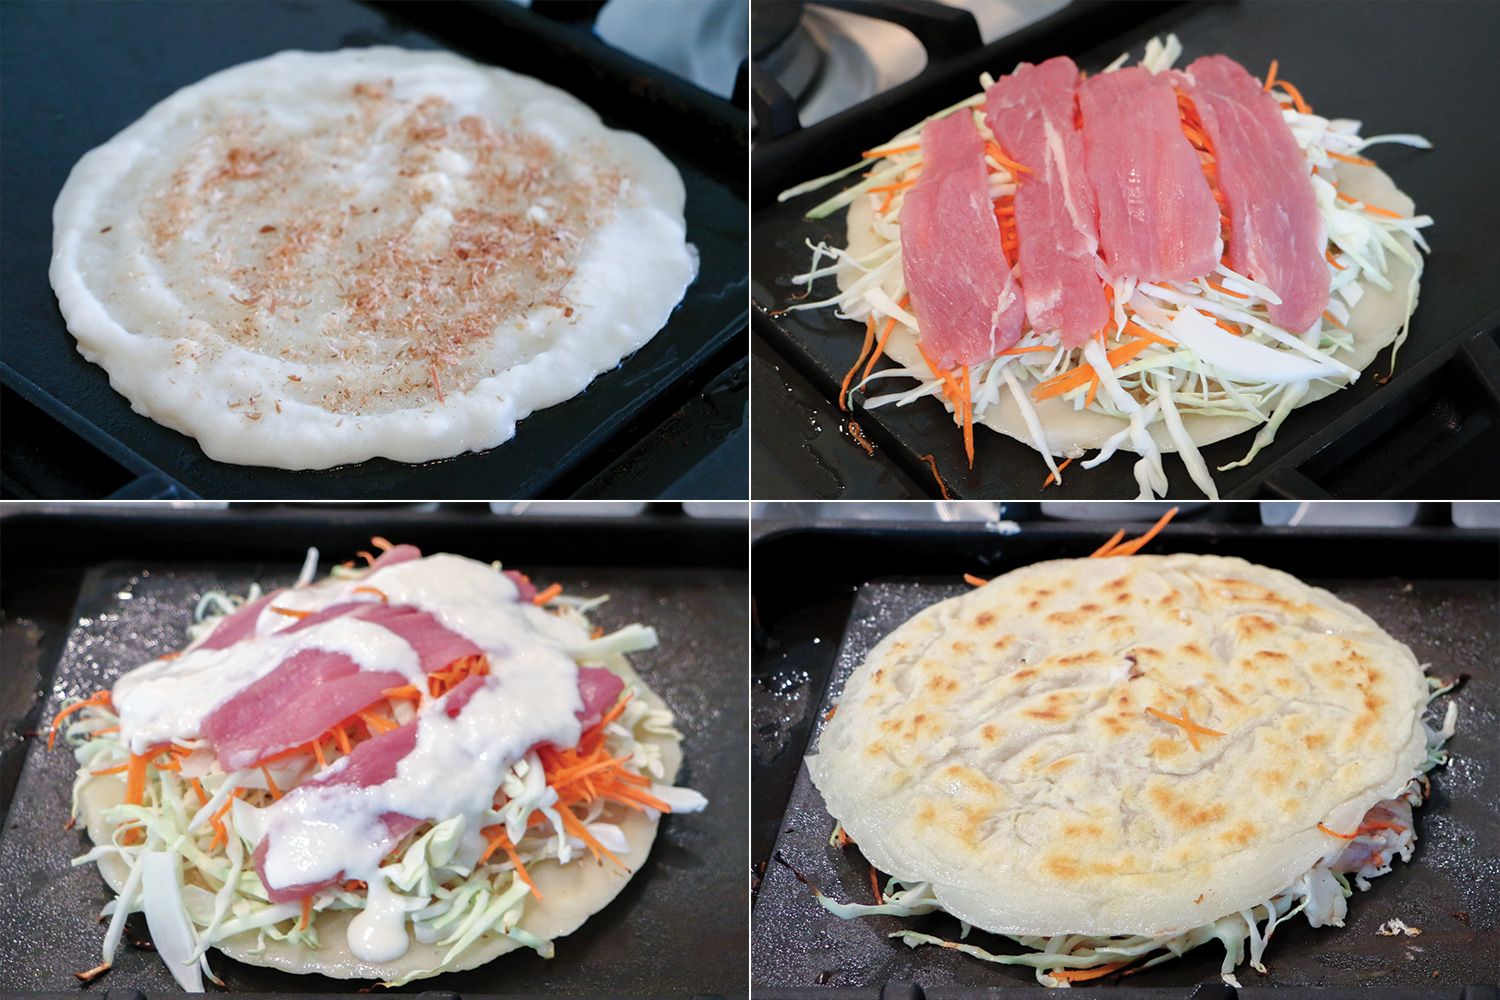 Steps to Make Hiroshima Style Okonomiyaki on a Griddle